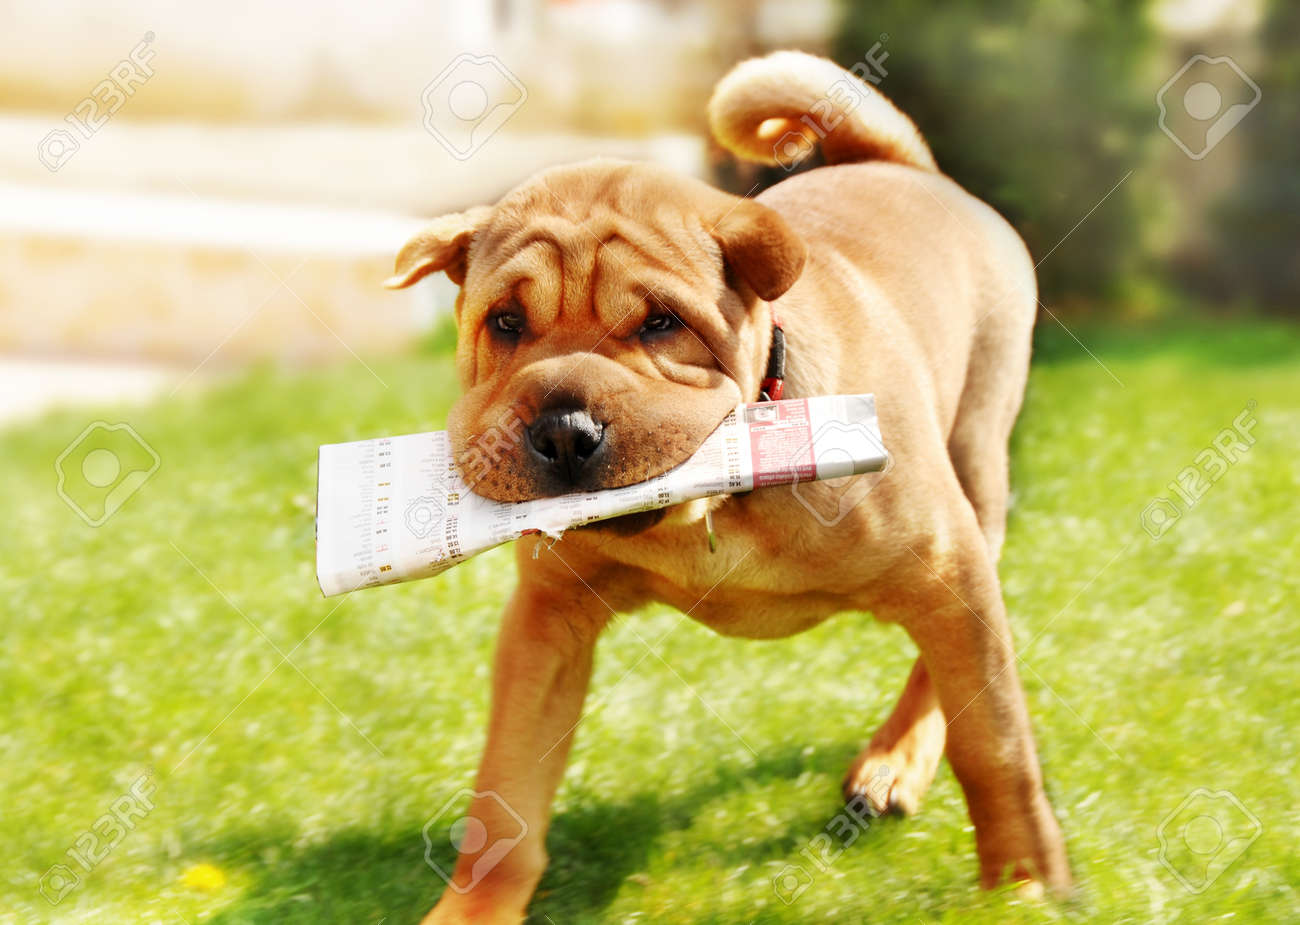 adorable shar pei dog carrying newspaper over green natural background outdoor - 10185757